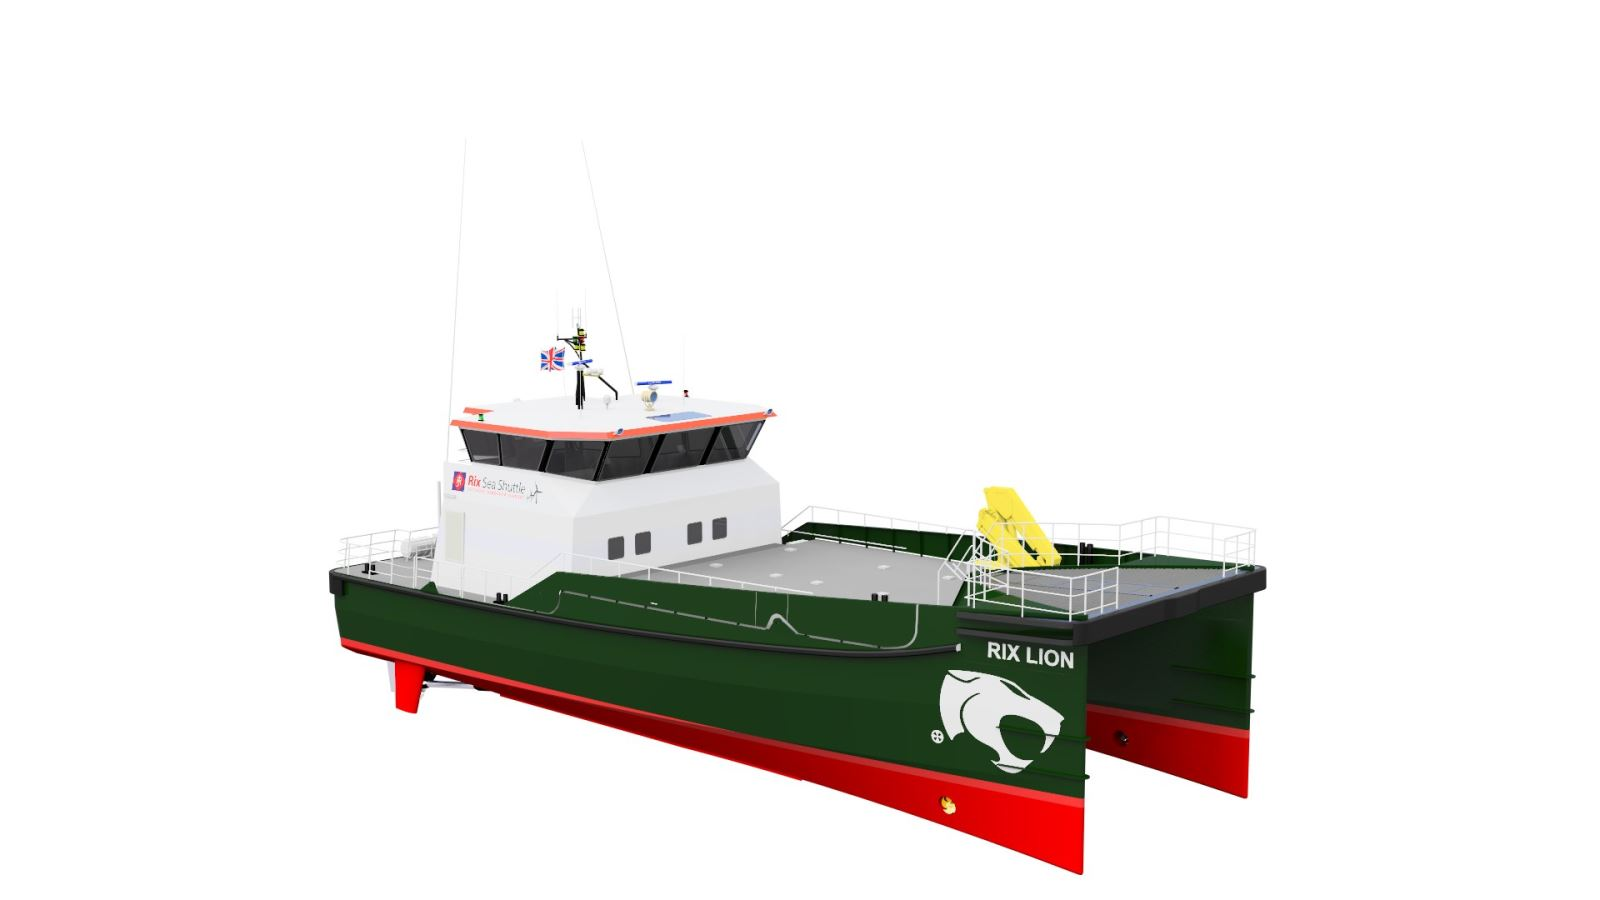 Rix Lion offshire shigh speed support vessel